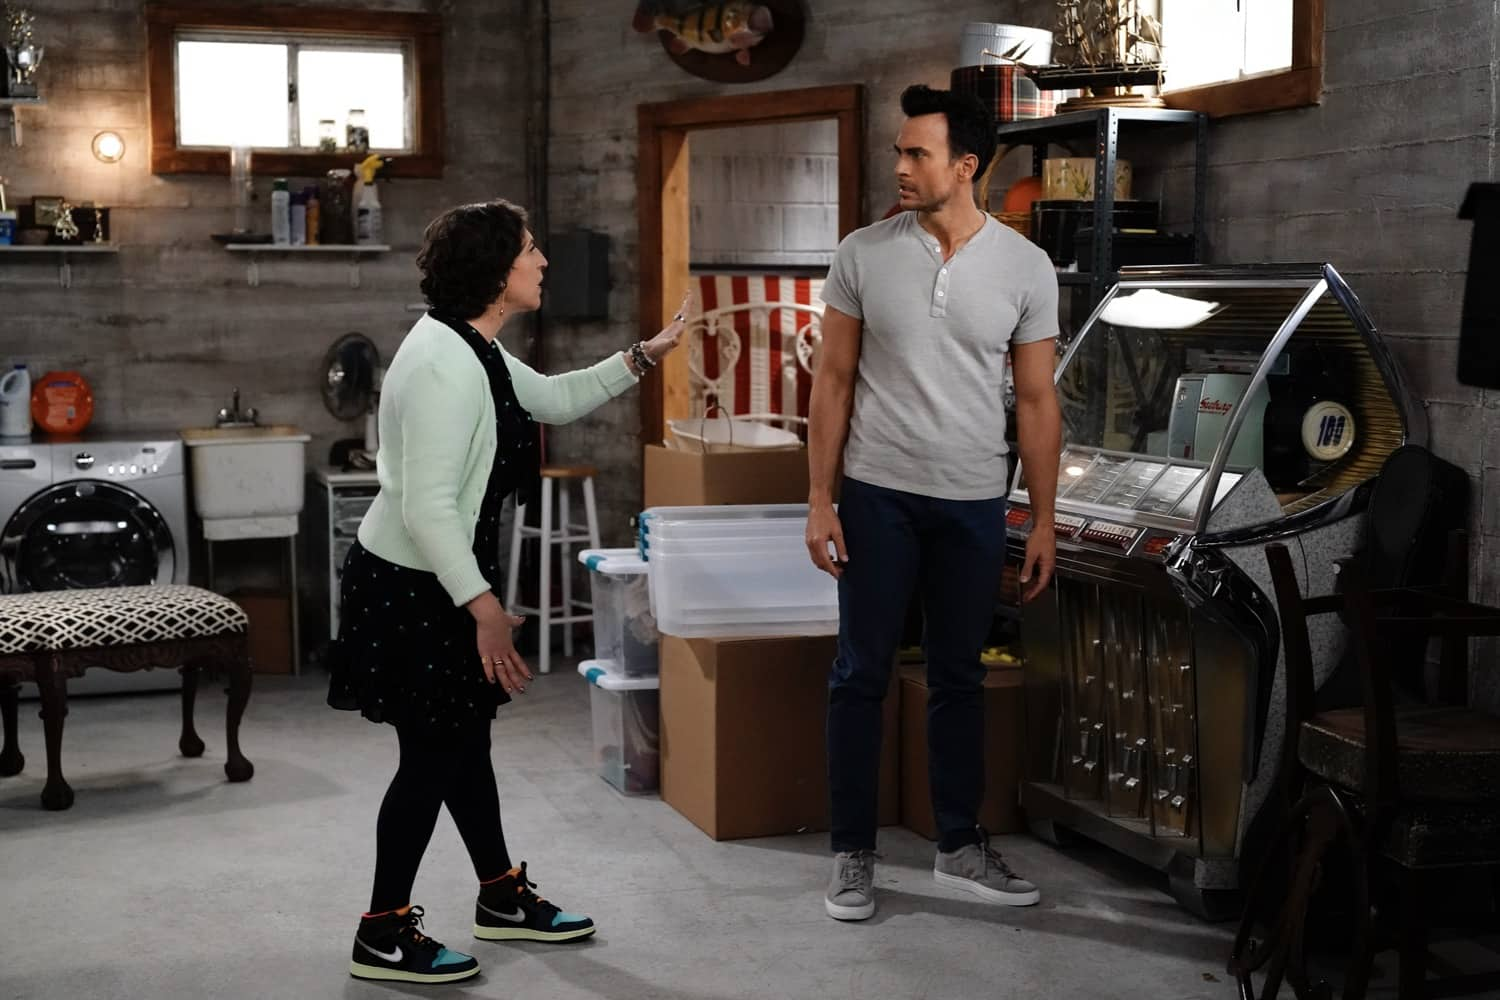 """CALL ME KAT Season 1 Episode 10 : L-R: Mayim Bialik and Cheyenne Jackson in the """"Business Council"""" episode of CALL ME KAT airing Thursday, March 4 (9:00-9:30 PM ET/PT) on FOX. ©2021 FOX MEDIA LLC. Cr. Cr: Lisa Rose/FOX."""